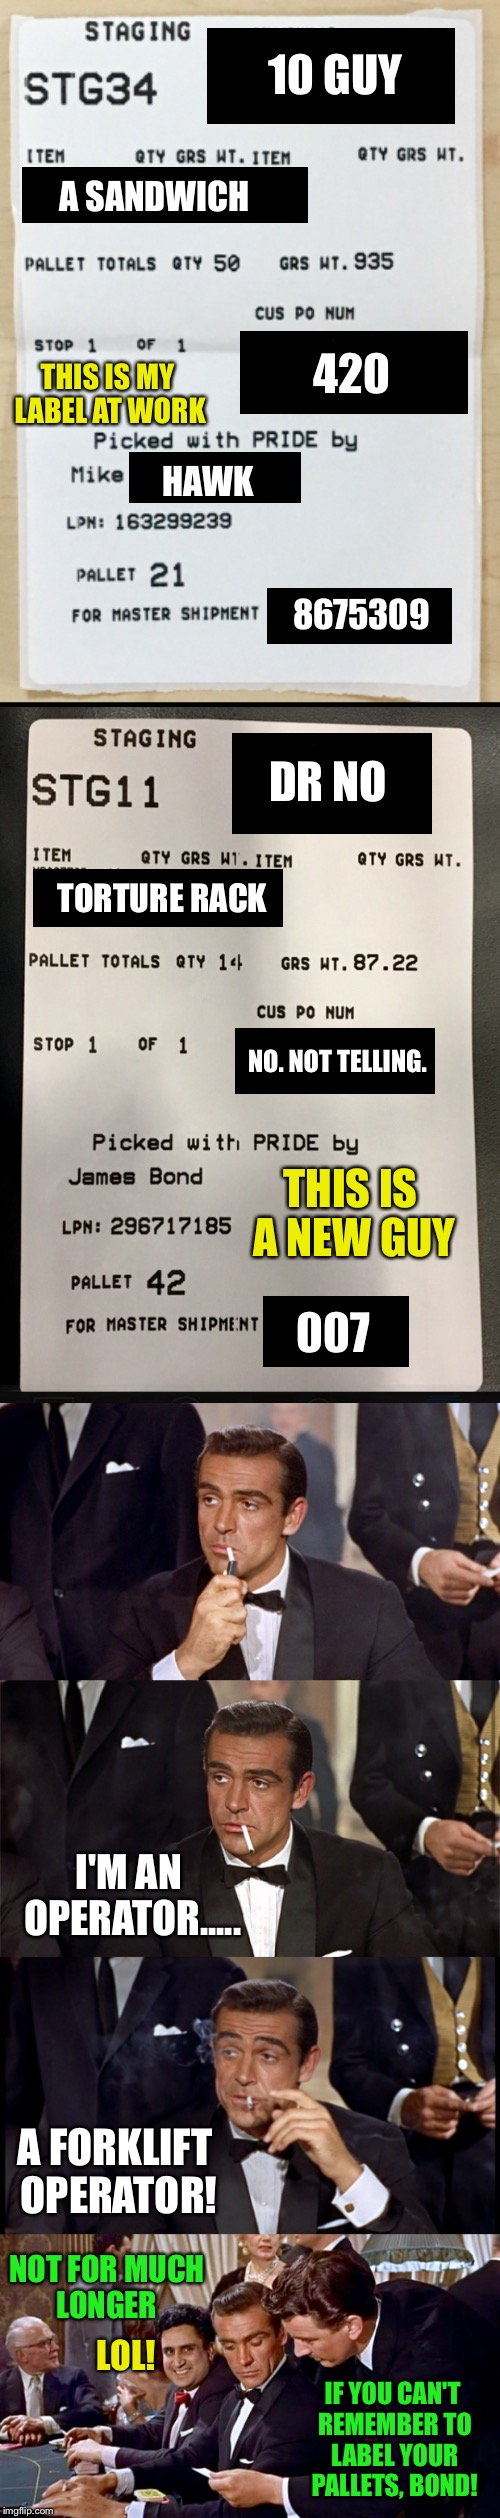 ALL OUTGOING PALLETS MUST BE LABELED (I'm Not Sure The New Guy Is Who He Says He Is) | 10 GUY NOT FOR MUCH LONGER A SANDWICH 420 8675309 HAWK DR NO TORTURE RACK NO. NOT TELLING. 007 I'M AN OPERATOR..... A FORKLIFT OPERATOR! IF  | image tagged in james bond,007,movie week,forklift,work,job | made w/ Imgflip meme maker